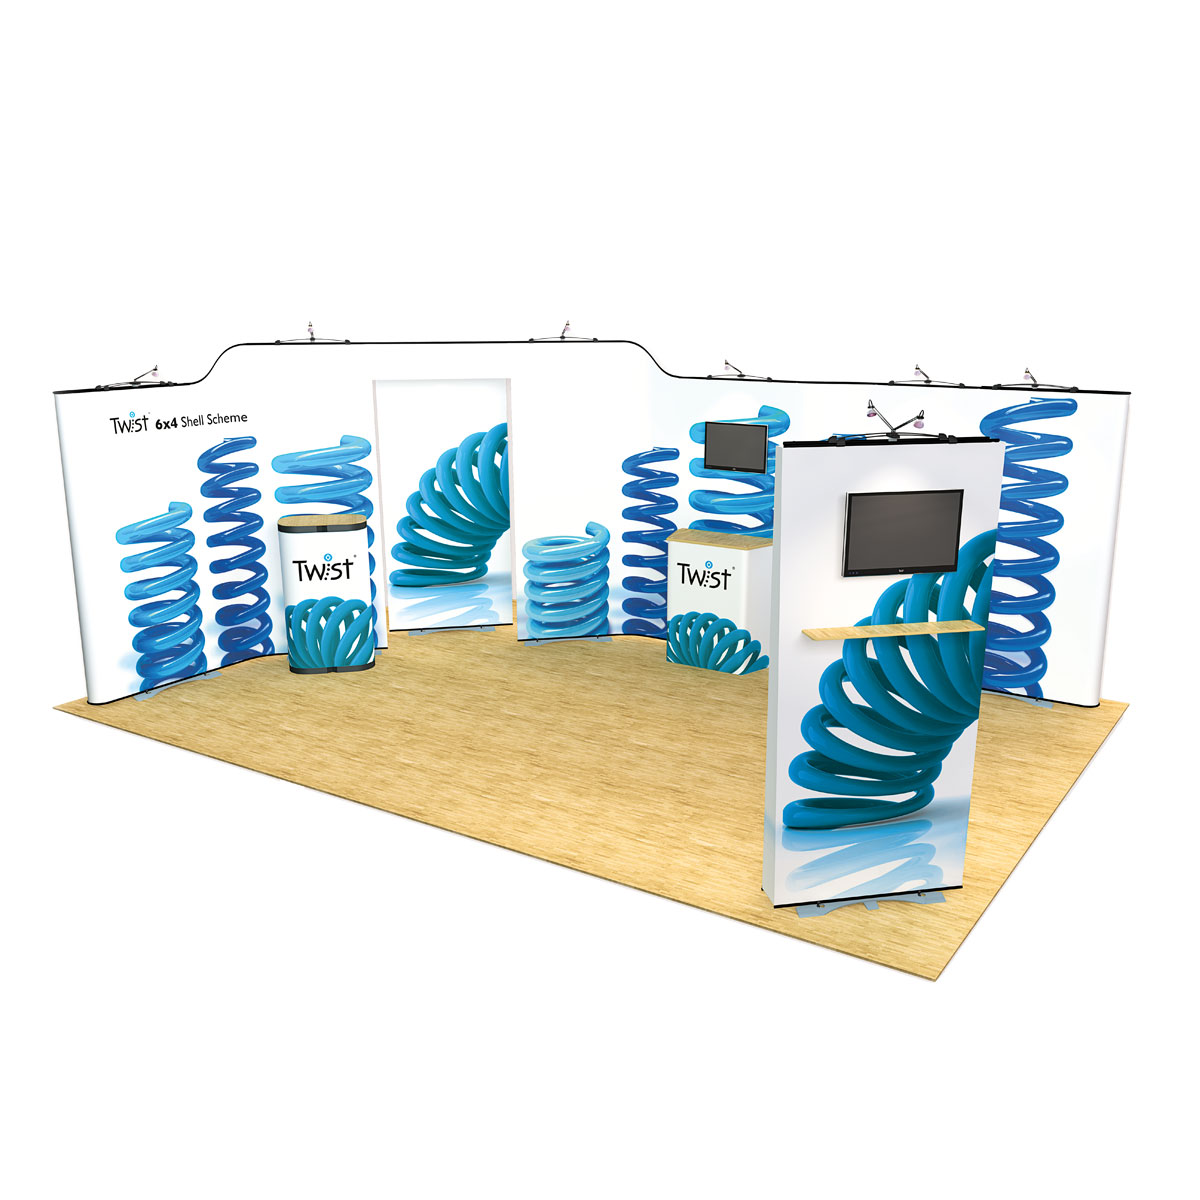 Modular Exhibition Stands Election : Twist modular exhibition stands